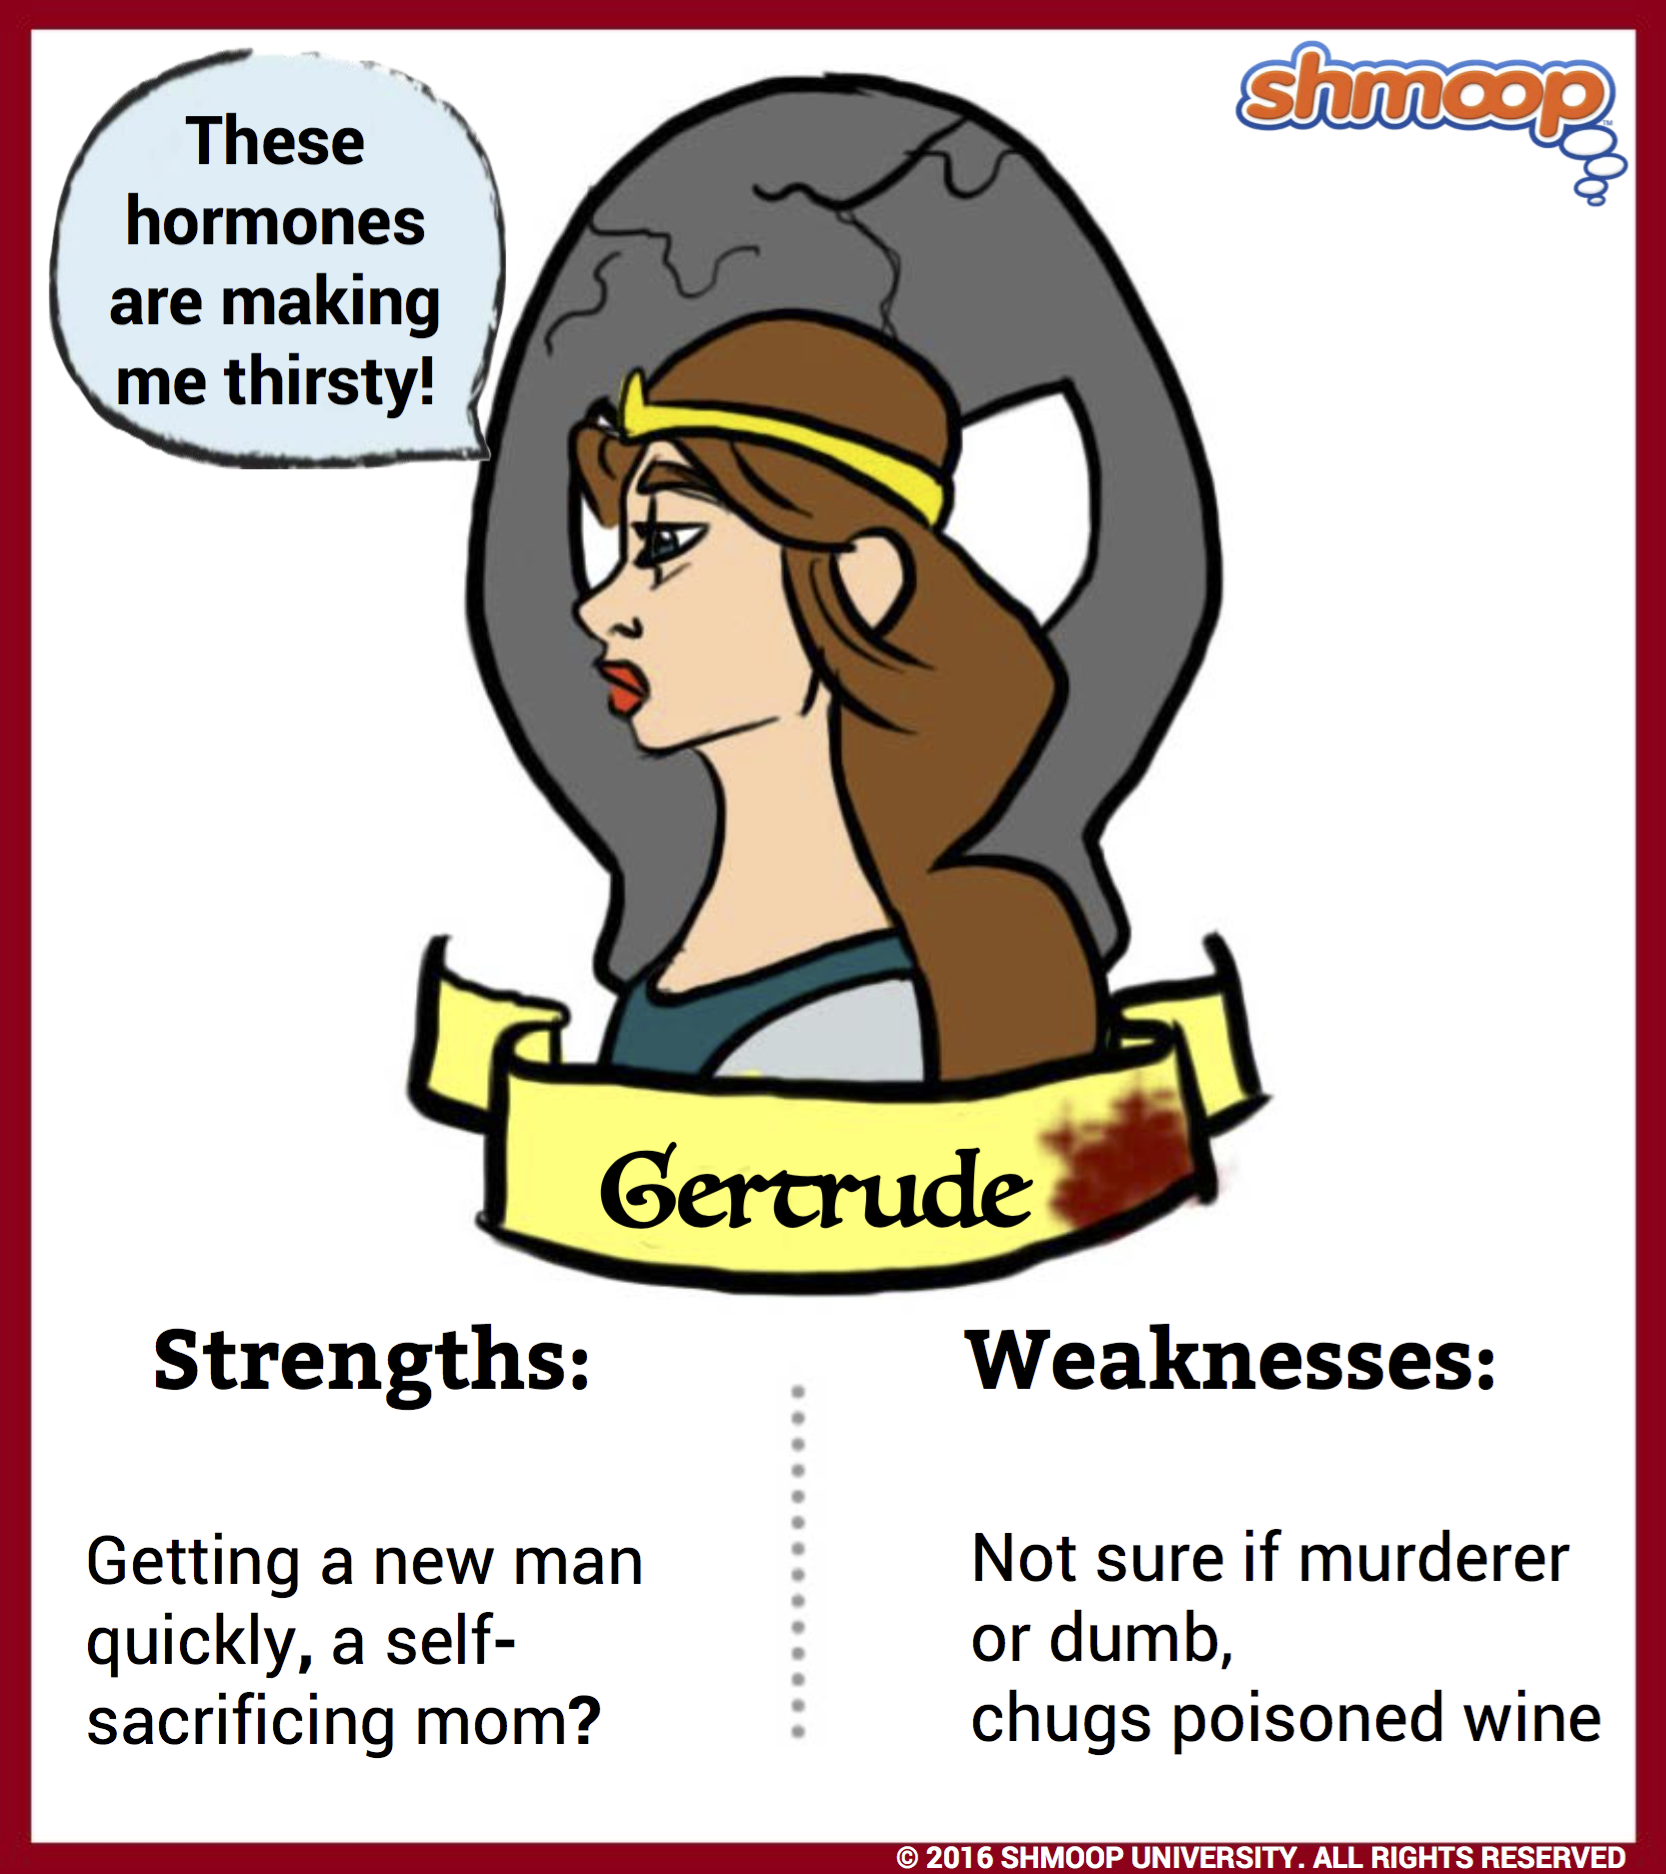 shakespeares hamlet regarding gertrude essay Introduction to gertrude in hamlet gertrude is, more so than any other character in the play, the antithesis of her son, hamlet hamlet is a scholar and a philosopher.